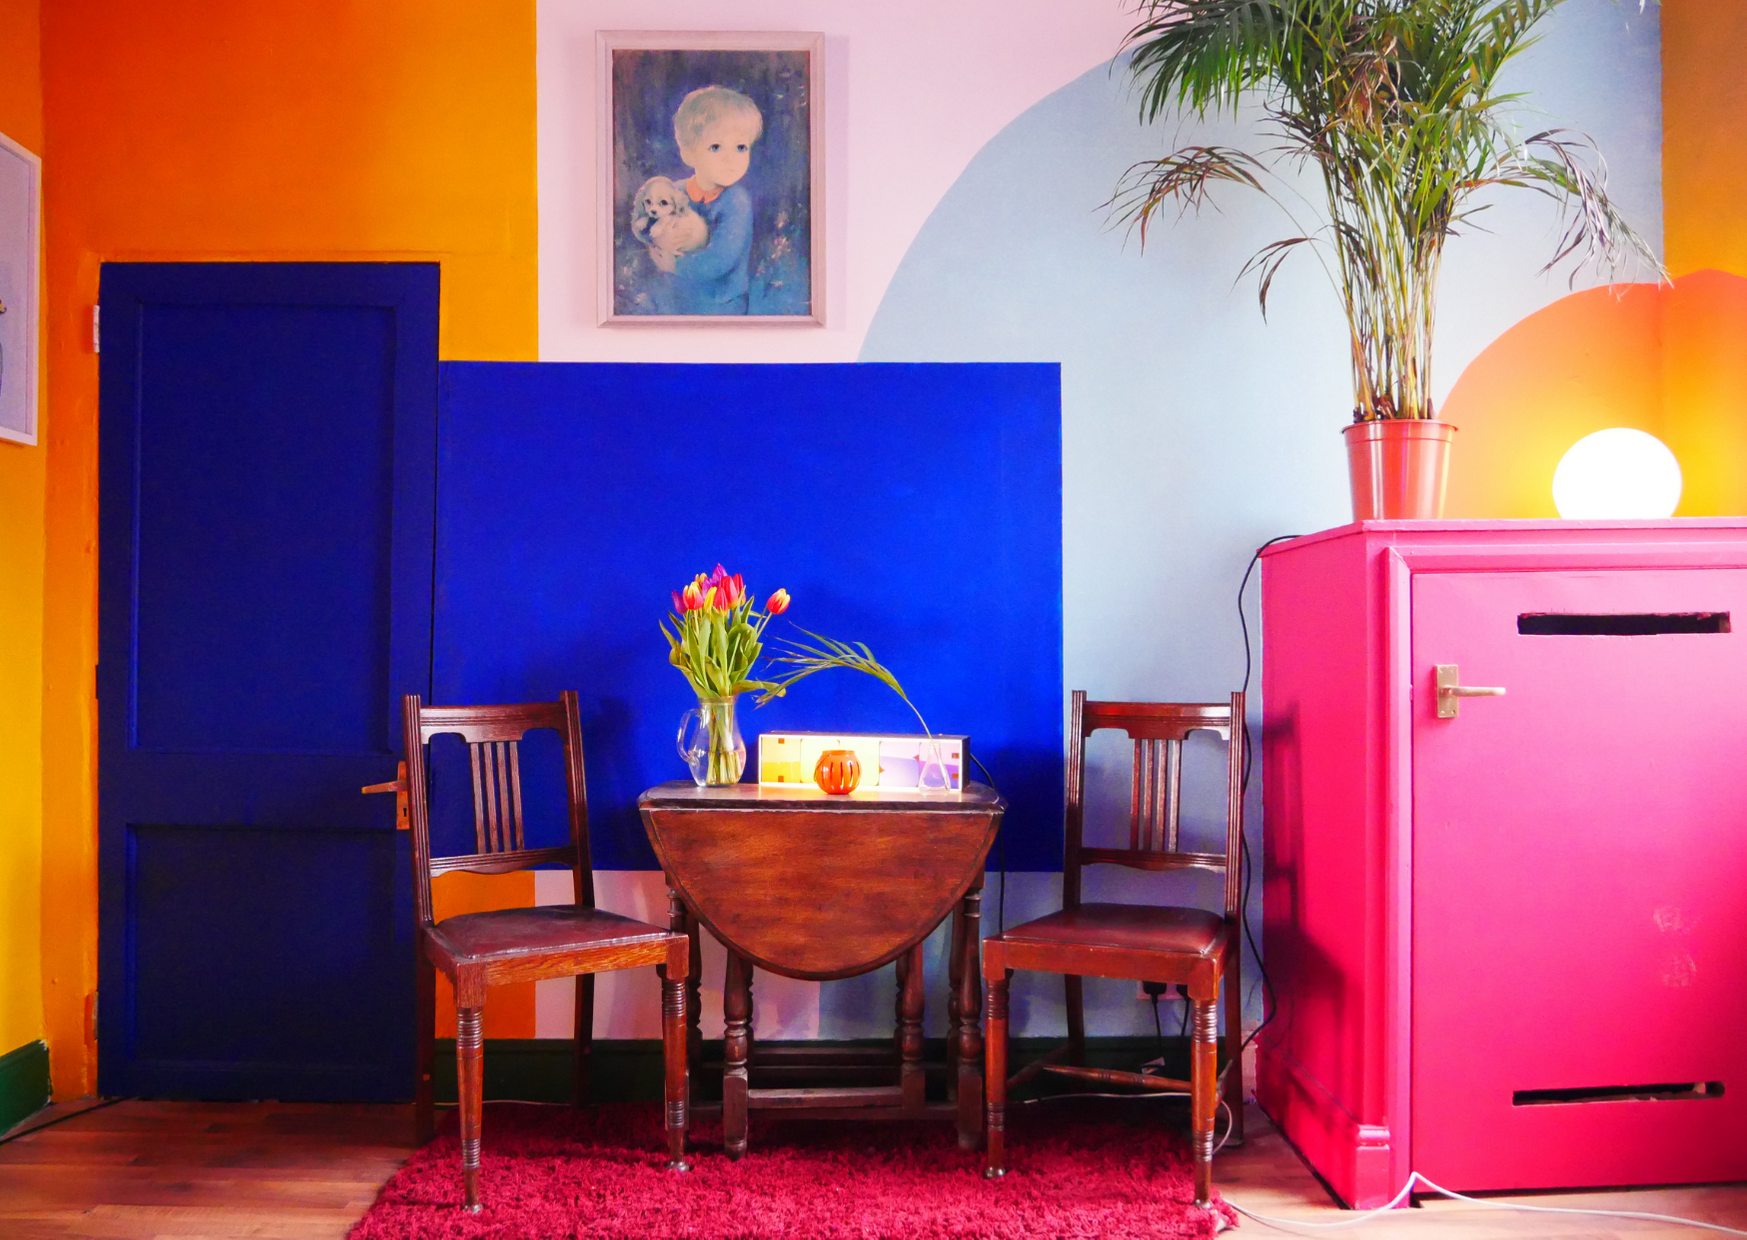 The Lounge at The Lab Northampton. A colourful room to get creative in.